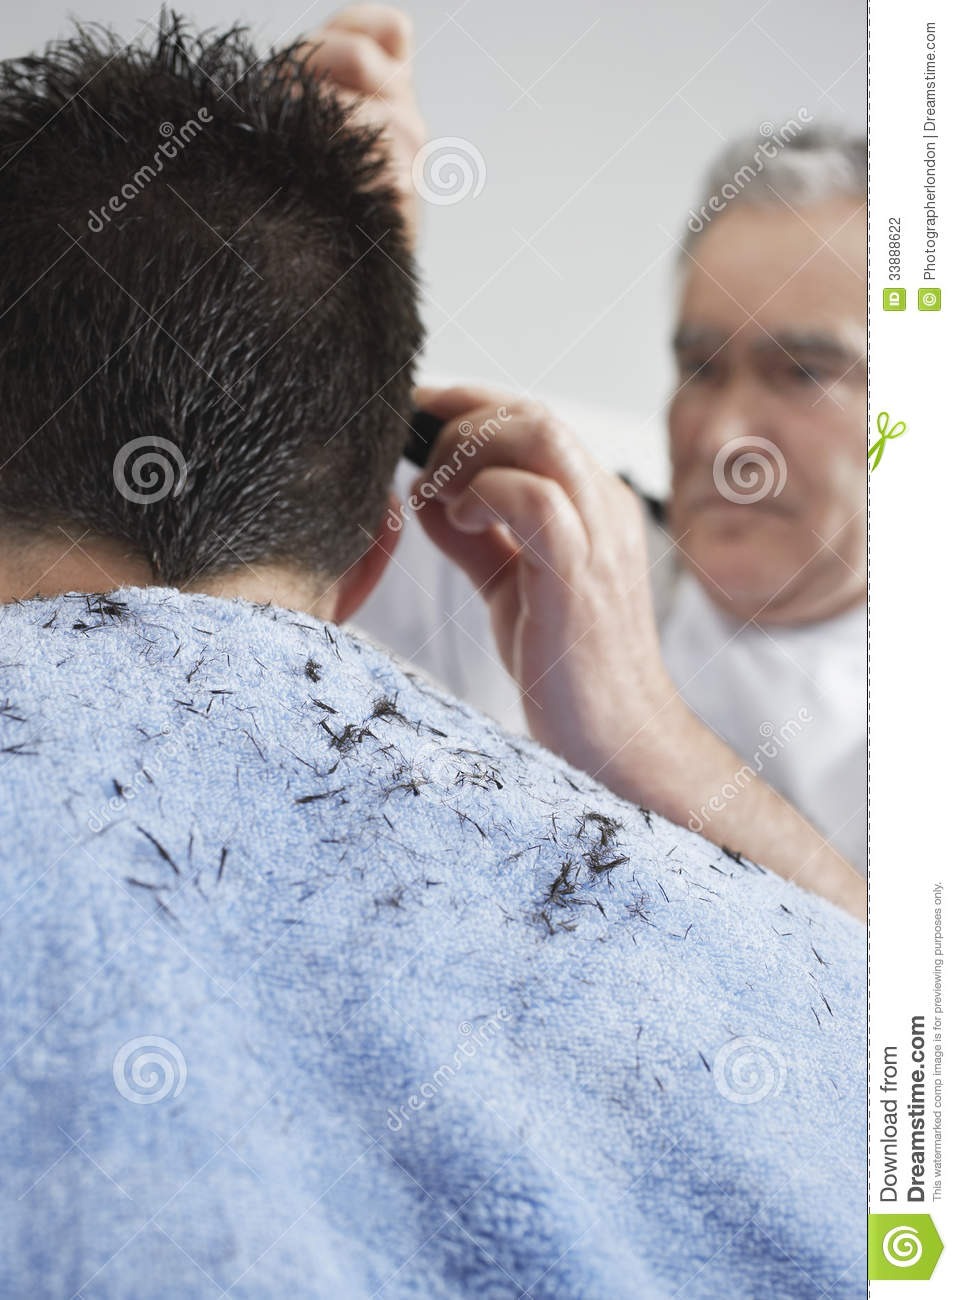 Hairdresser Cutting Mans Hair Stock Photo Image Of